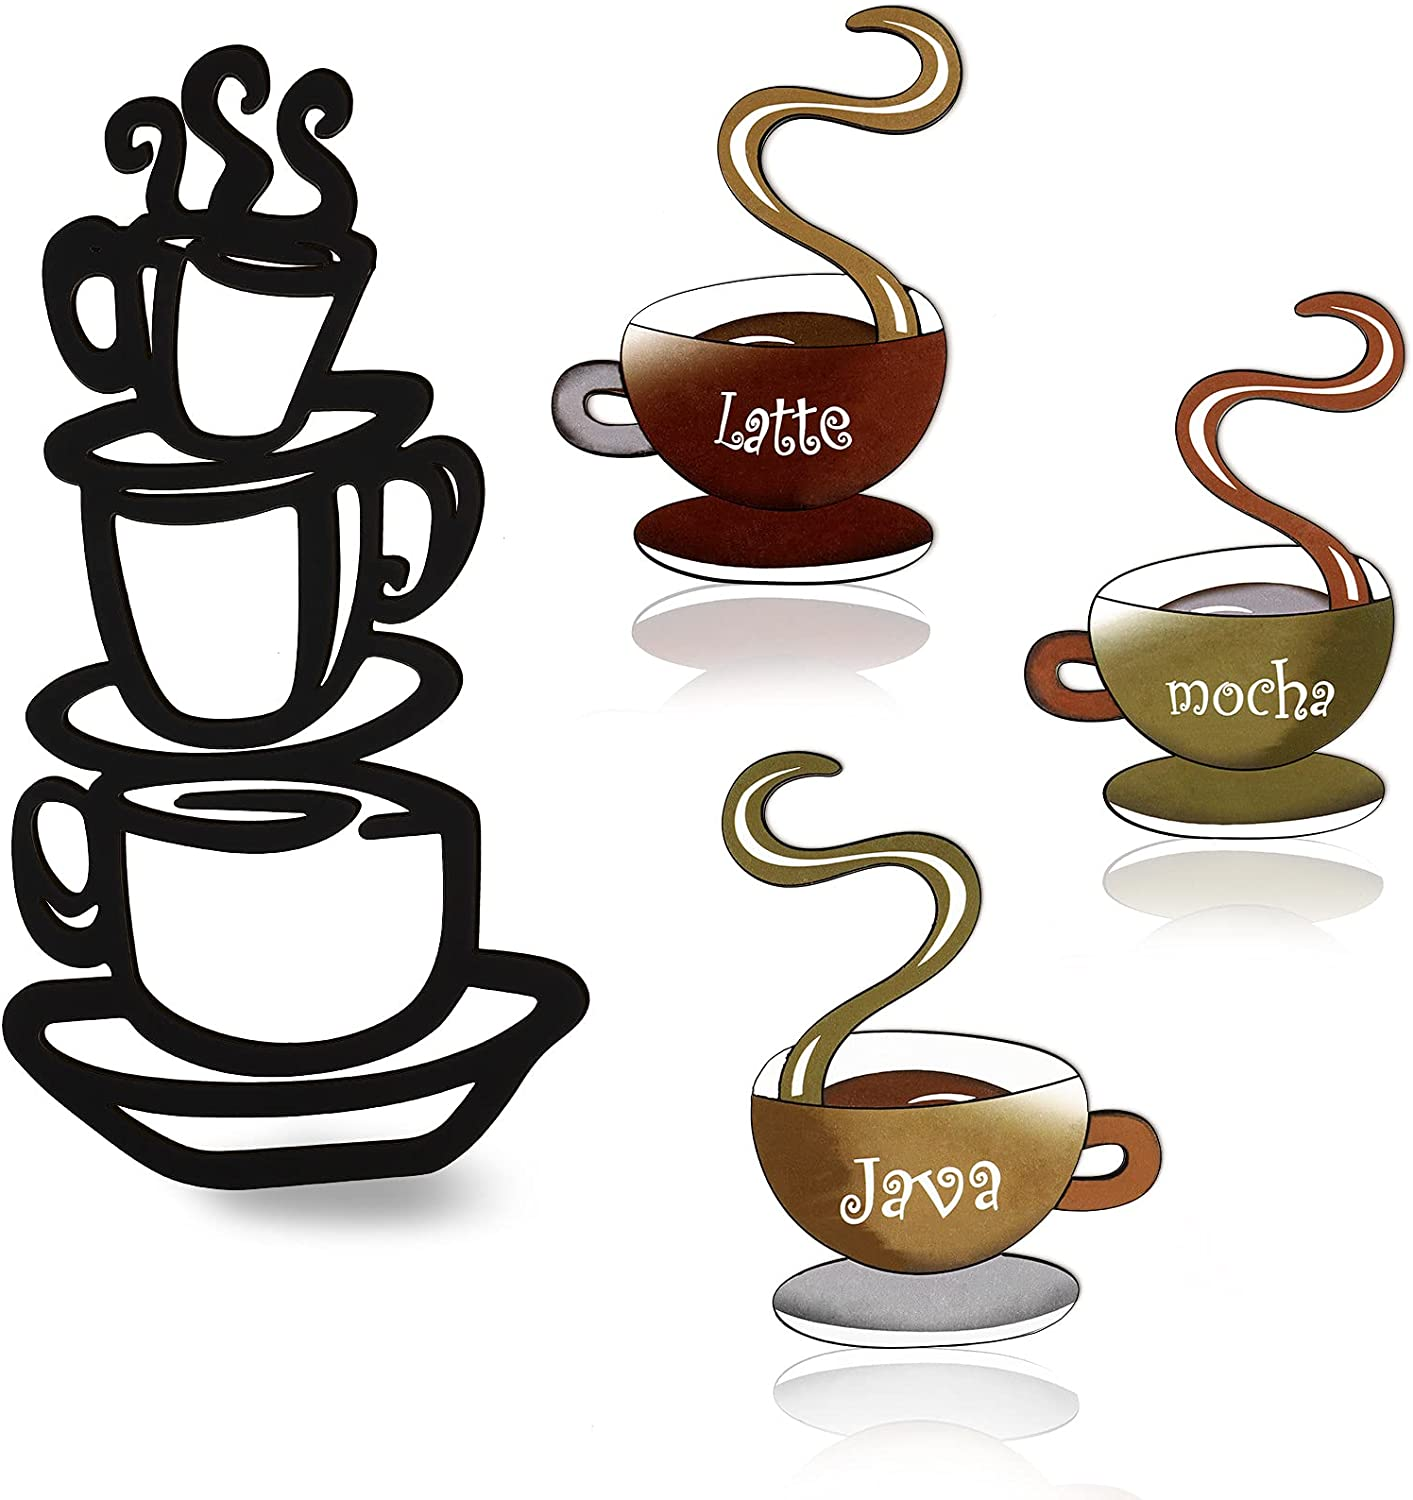 4 Pieces Coffee Cup Wood Wall Art Coffee Tea Cup Wall Sign Decor Mug Latte Java Mocha Cup Wall Plaque with Hook Rustic Silhouette Coffee Cup Home Wood Decor for Farmhouse Kitchen Restaurant Decoration